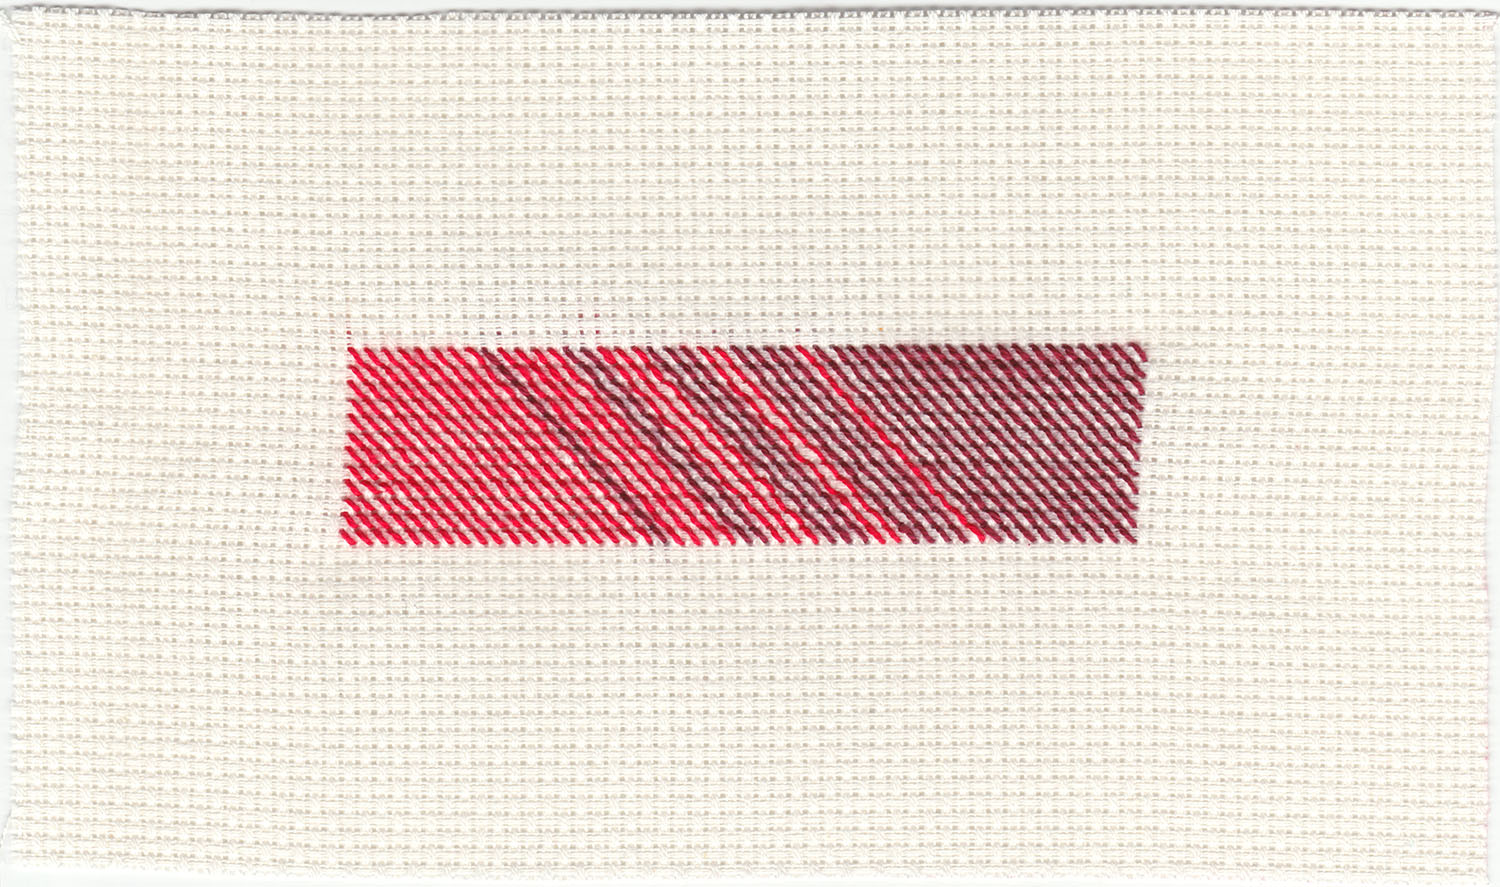 Colour Study in 576 Diagonal Stitches_8A_web.jpg